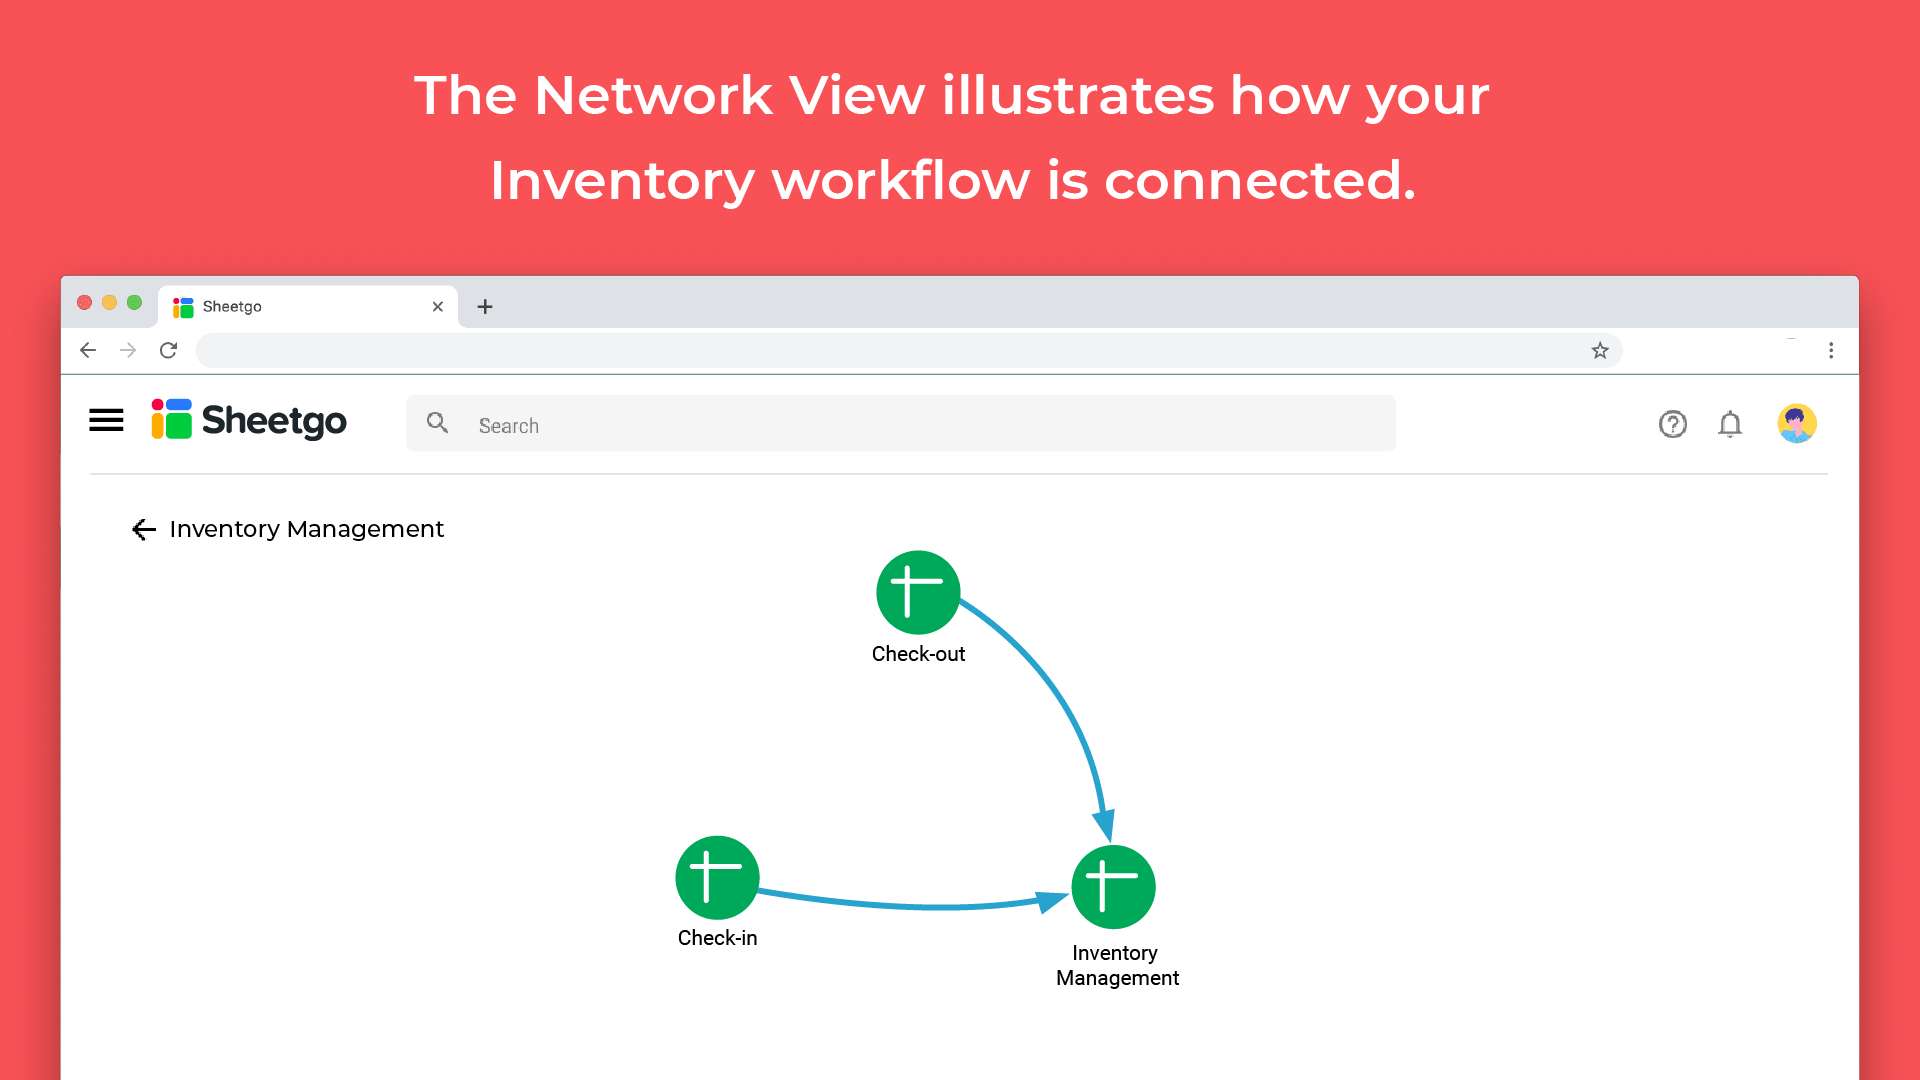 inventory template connected with check in and check out